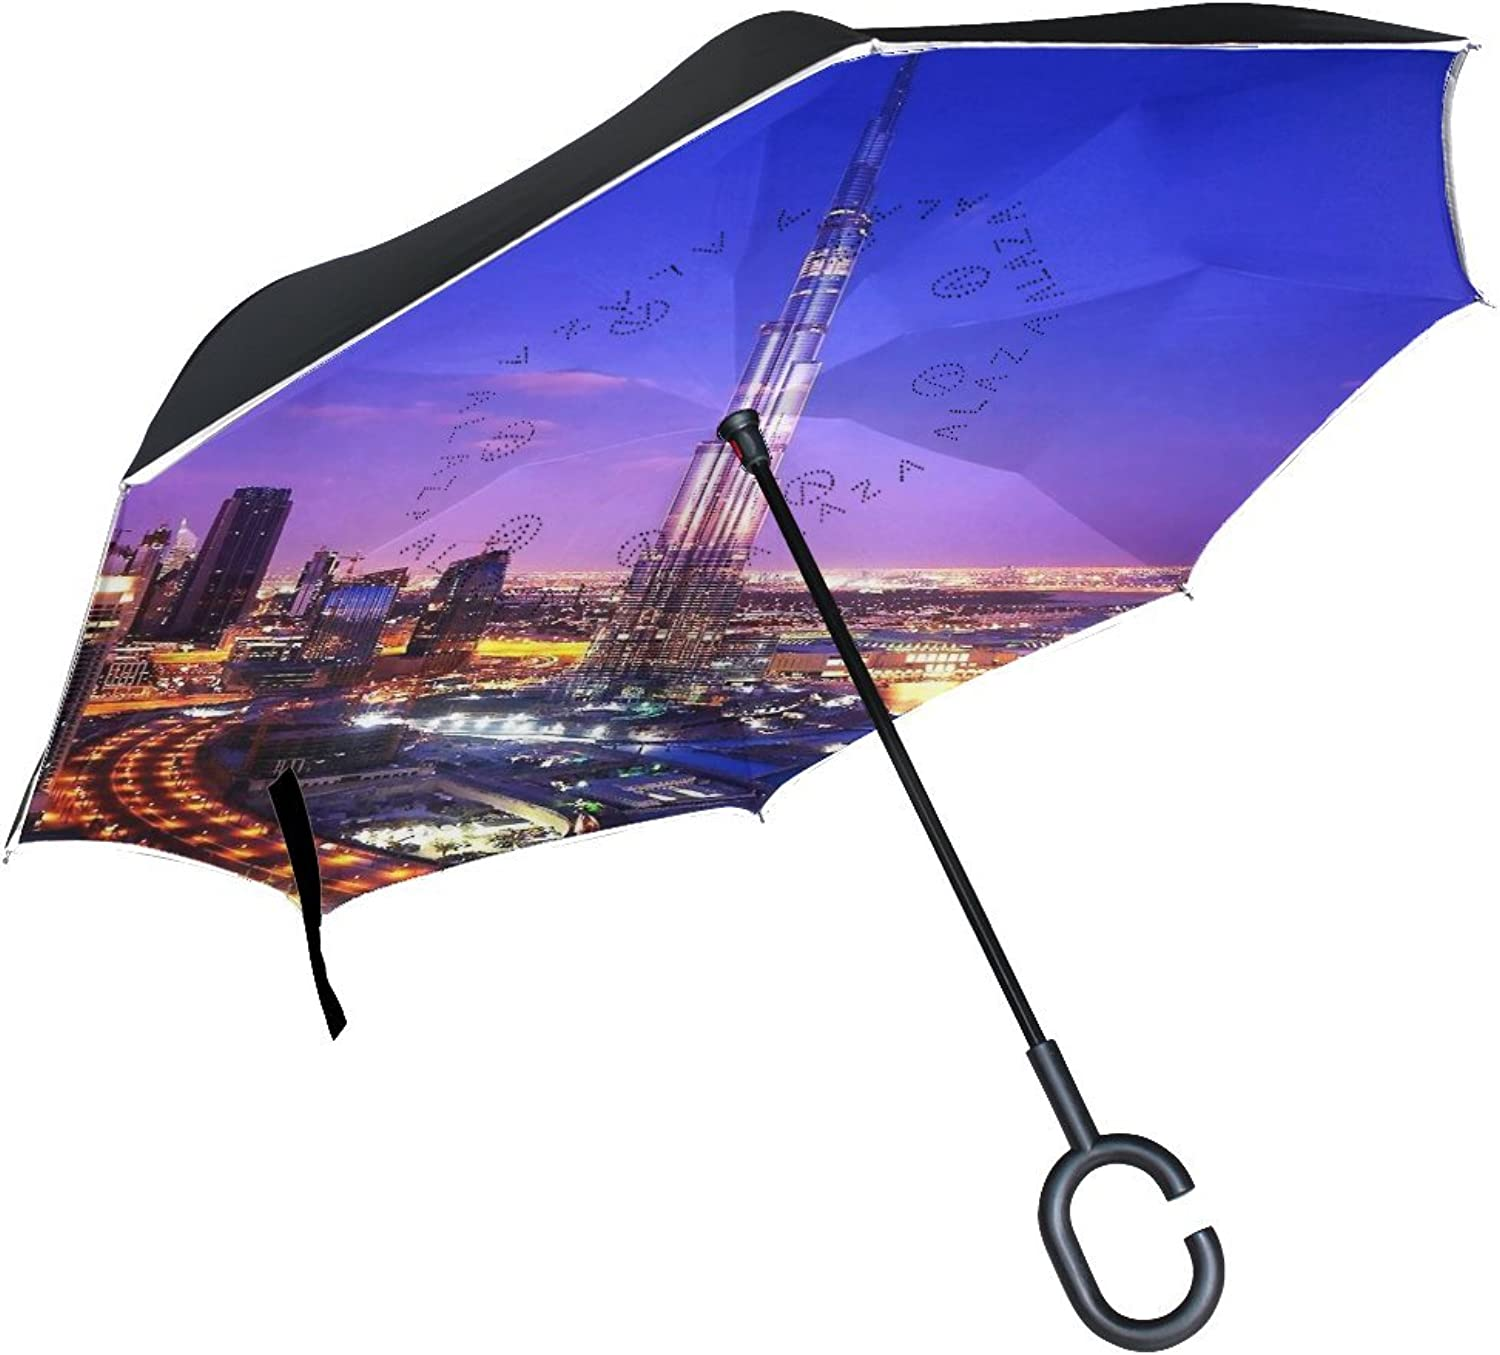 Countriy UAE Ajman Commercial Panoramic Spectacular Landscape Grand Awesome Ingreened Umbrella Large Double Layer Outdoor Rain Sun Car Reversible Umbrella